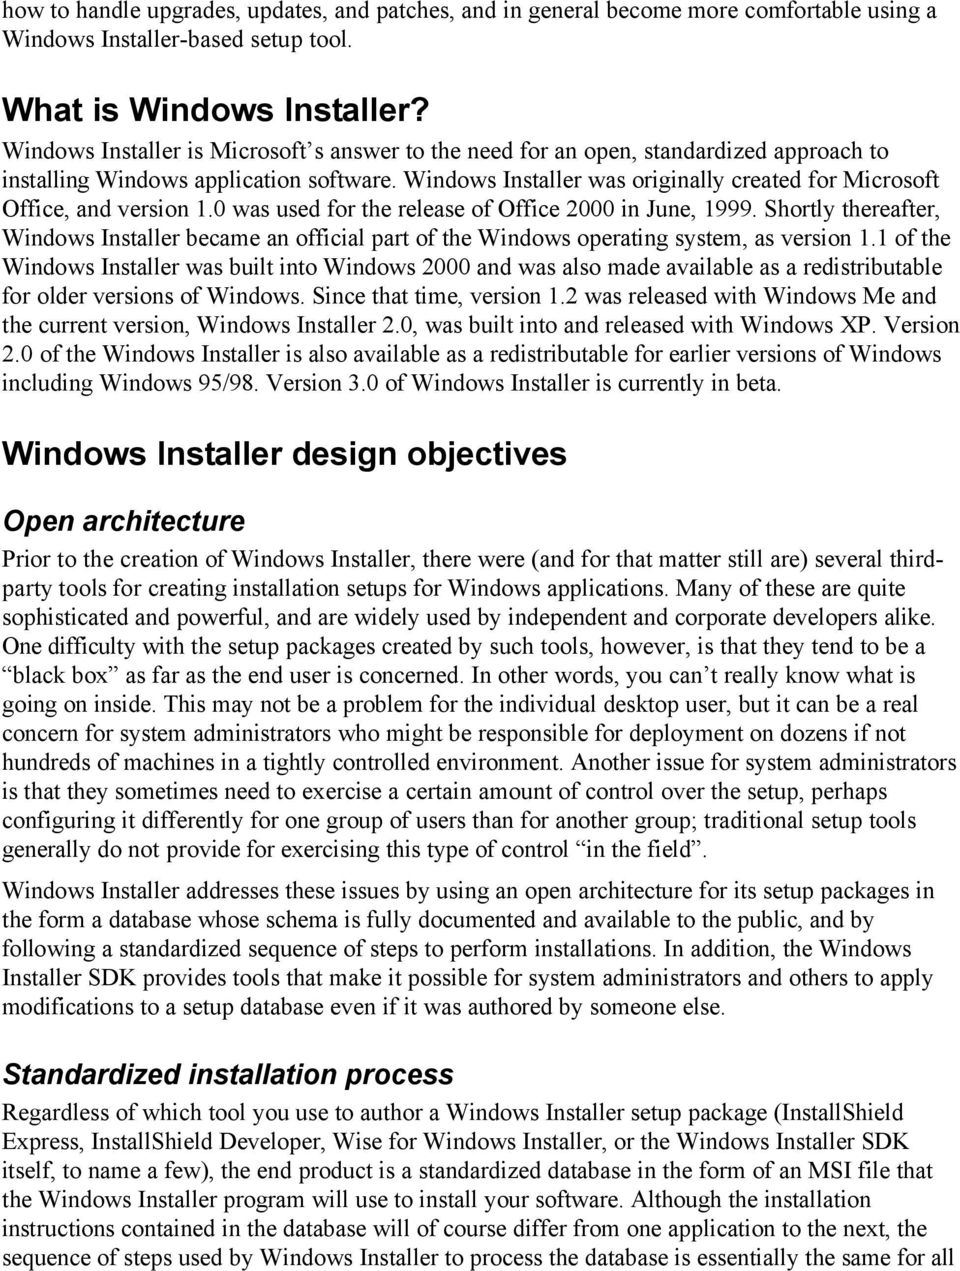 Windows Installer was originally created for Microsoft Office, and version 1.0 was used for the release of Office 2000 in June, 1999.